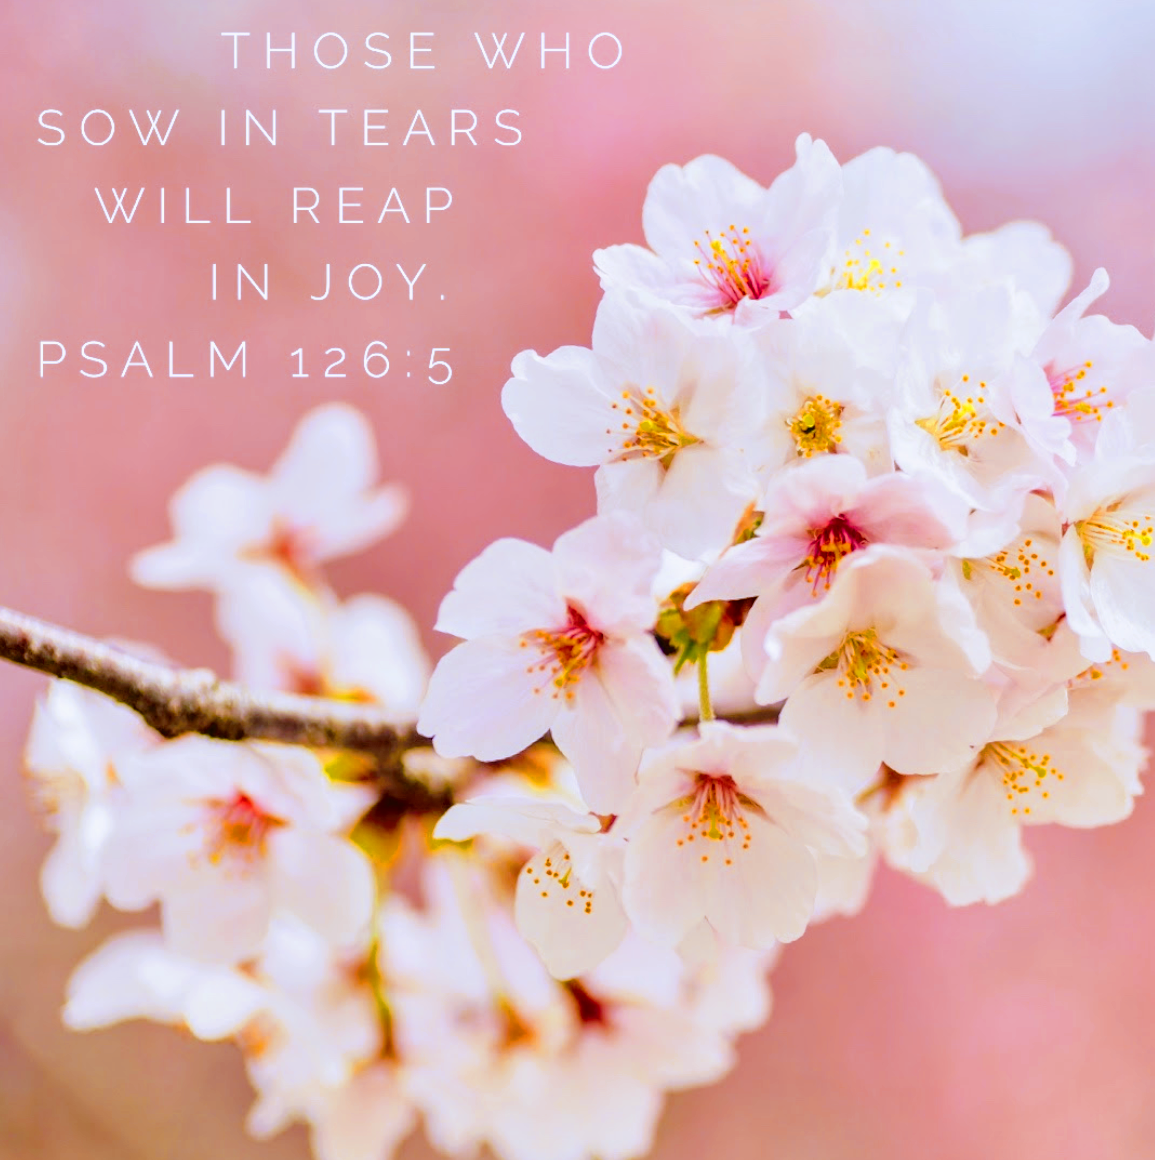 They that sow in tears shall reap in joy  - Psalm 126:5